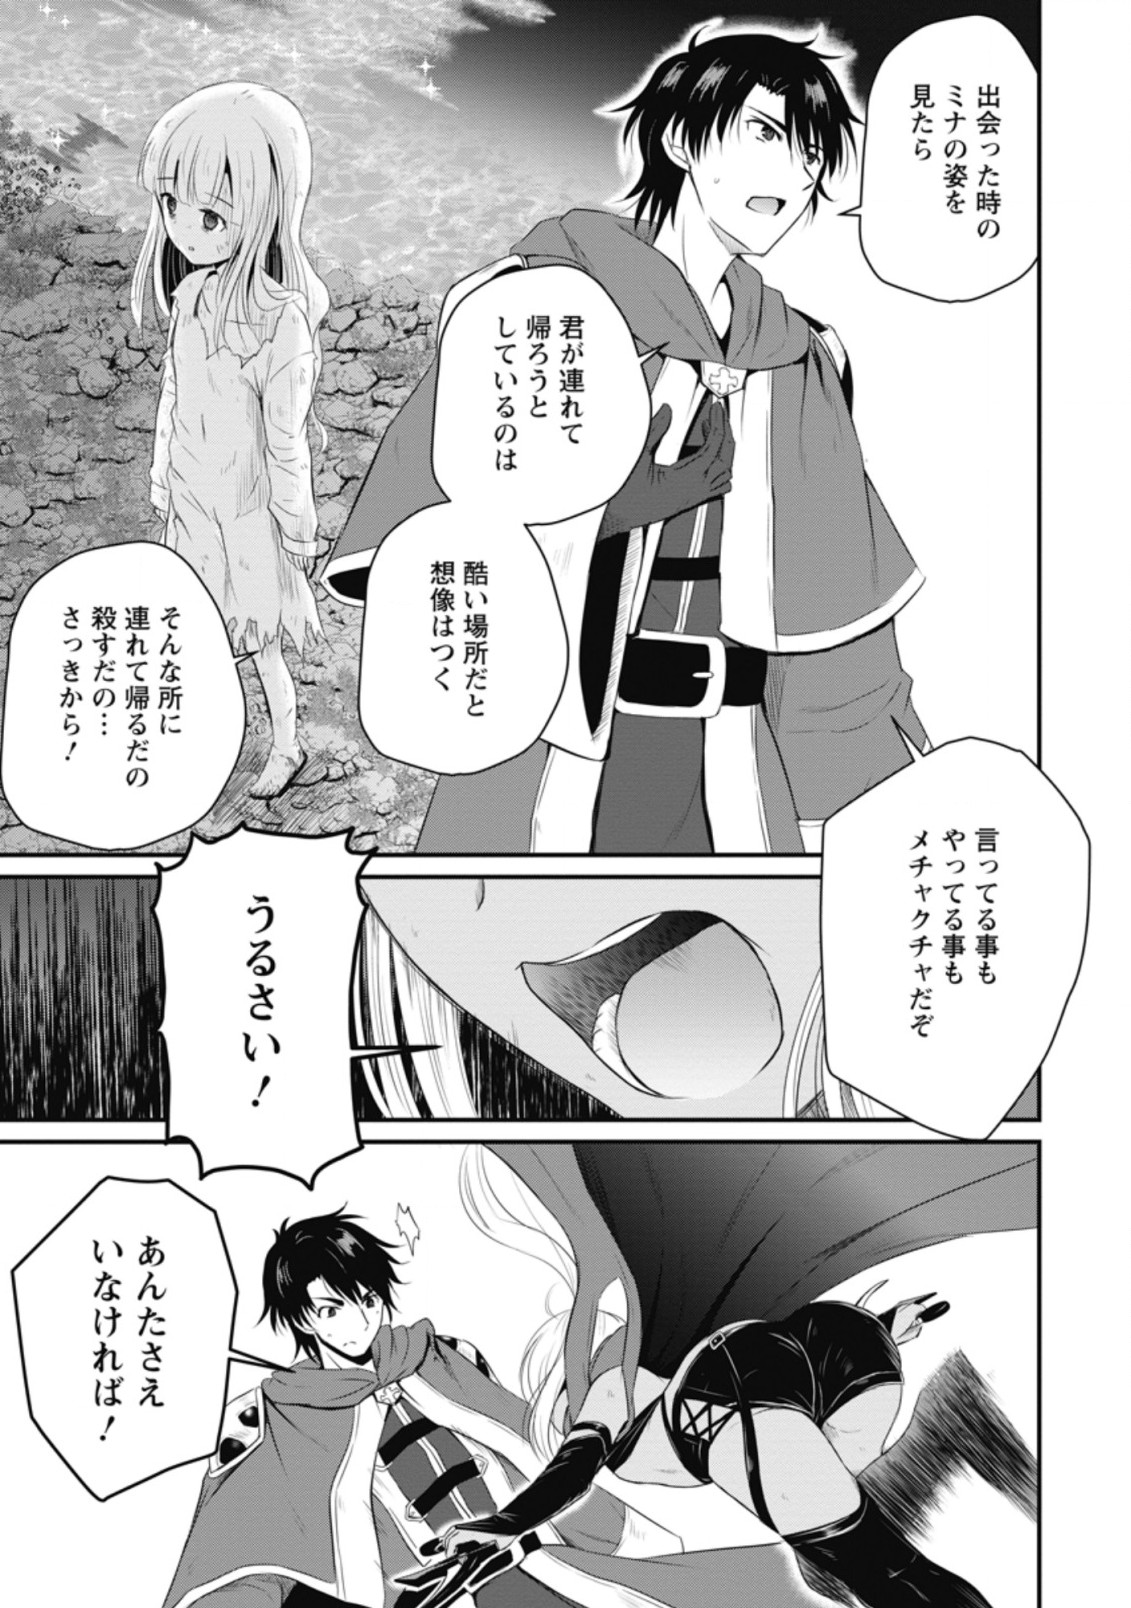 Manga Raw The Frontier Life of The Low-Class Ossan Healer And The Lovery Girl Manga Chapter 09.3